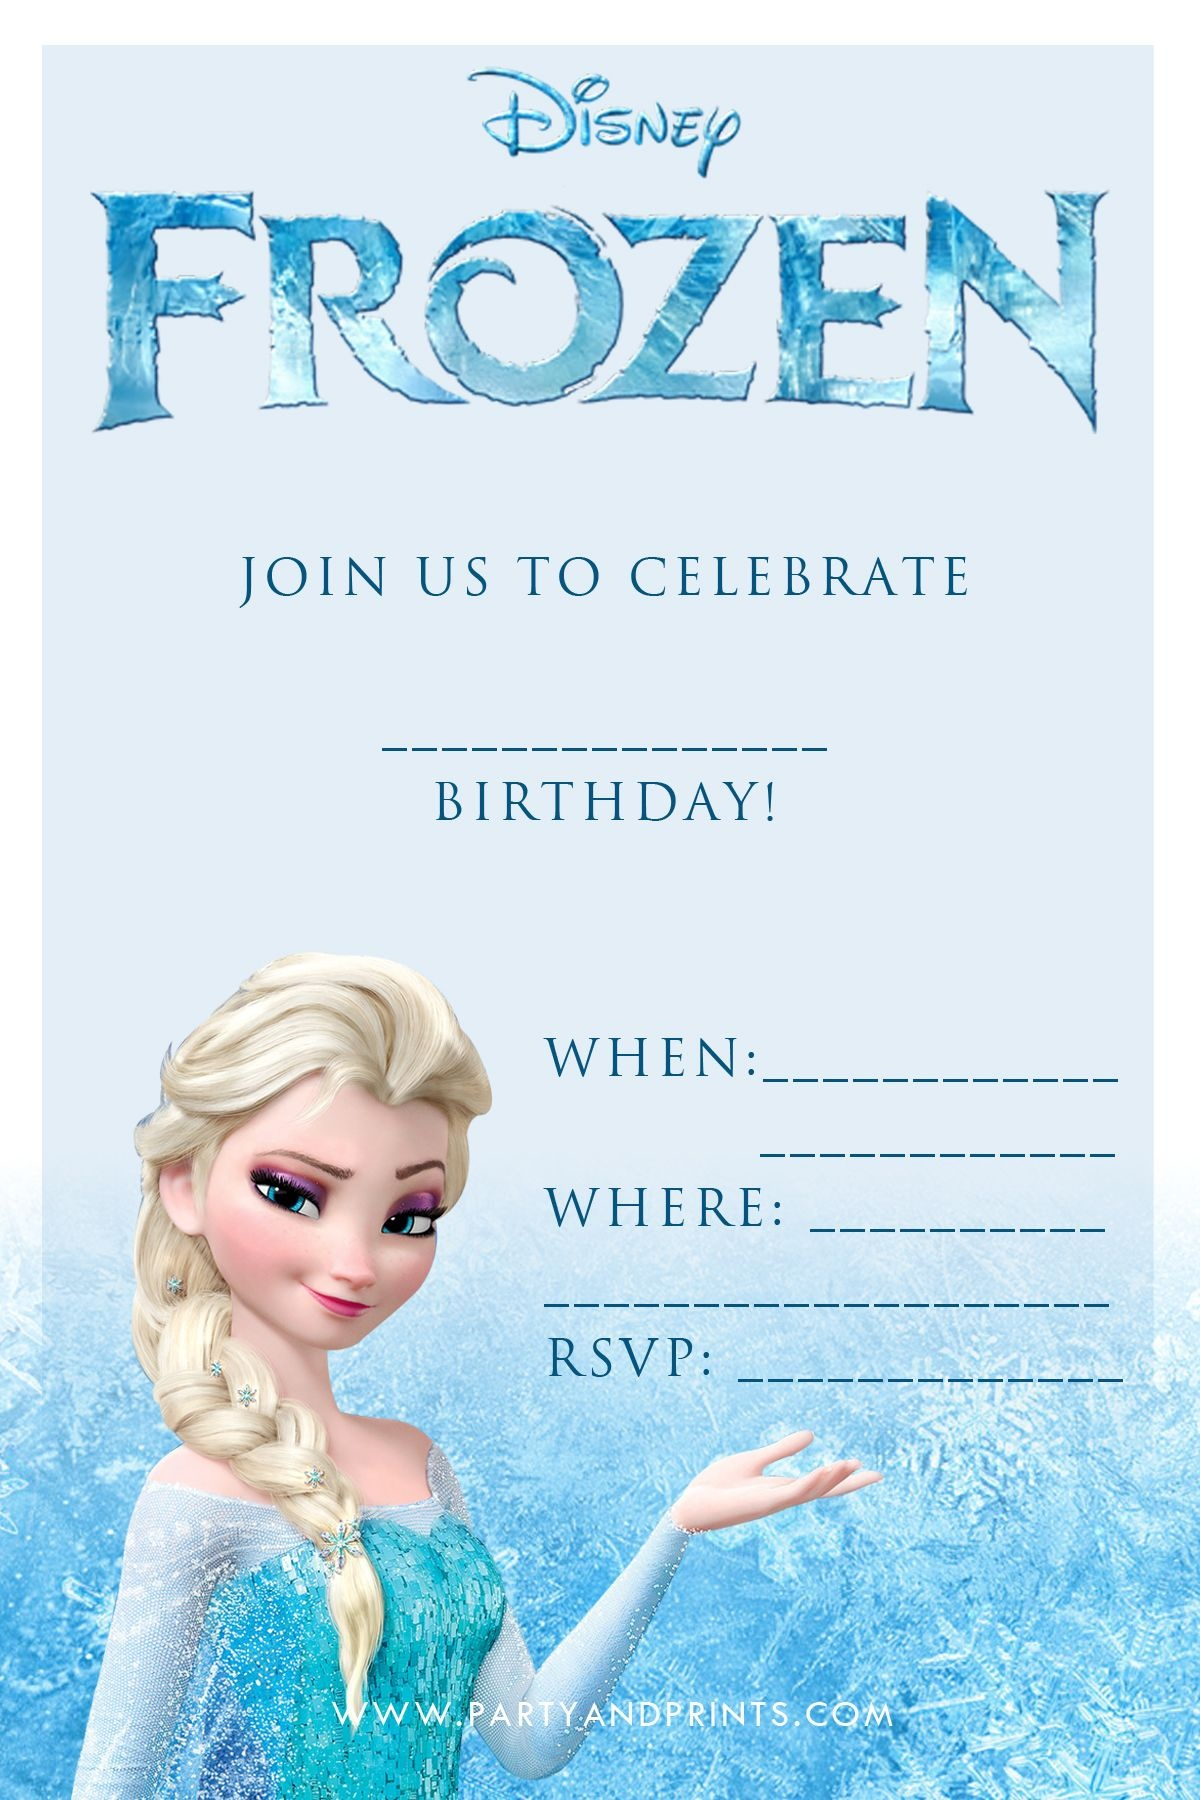 Free Printable Invitation From Www.partyandprints | Party - Free Printable Frozen Birthday Invitations